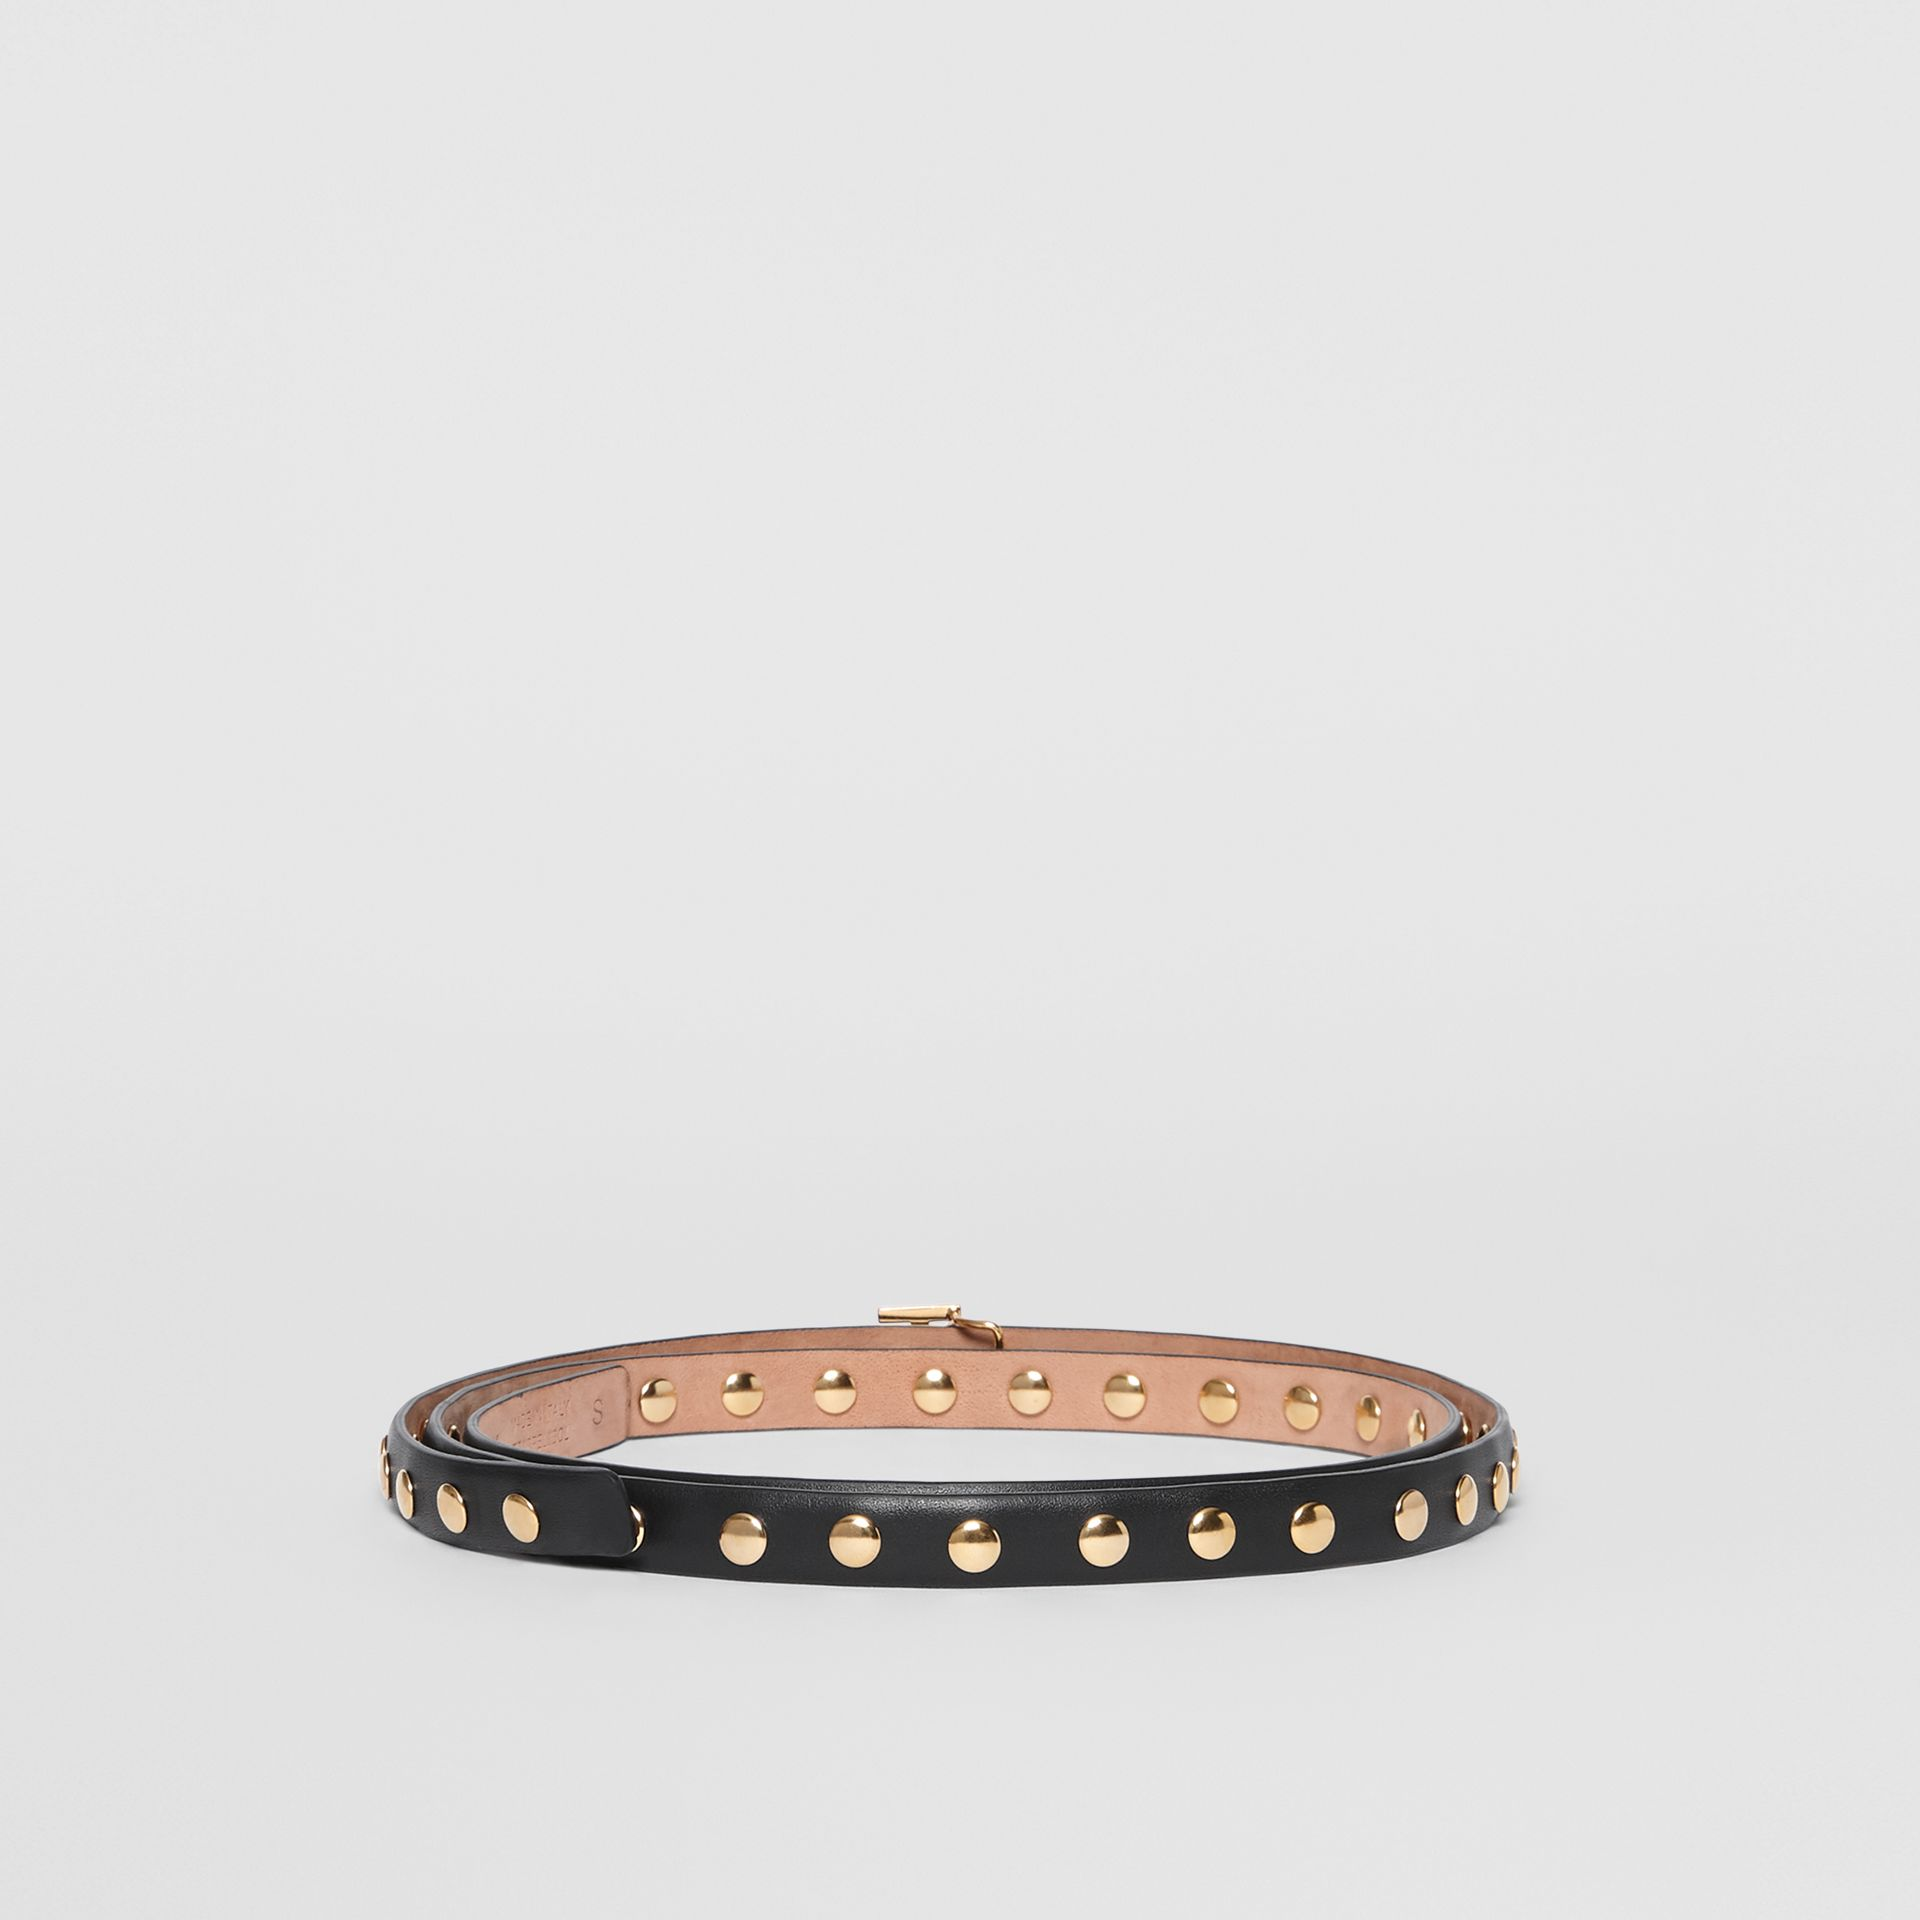 Monogram Motif Studded Leather Belt in Black/light Gold - Women | Burberry Australia - gallery image 4